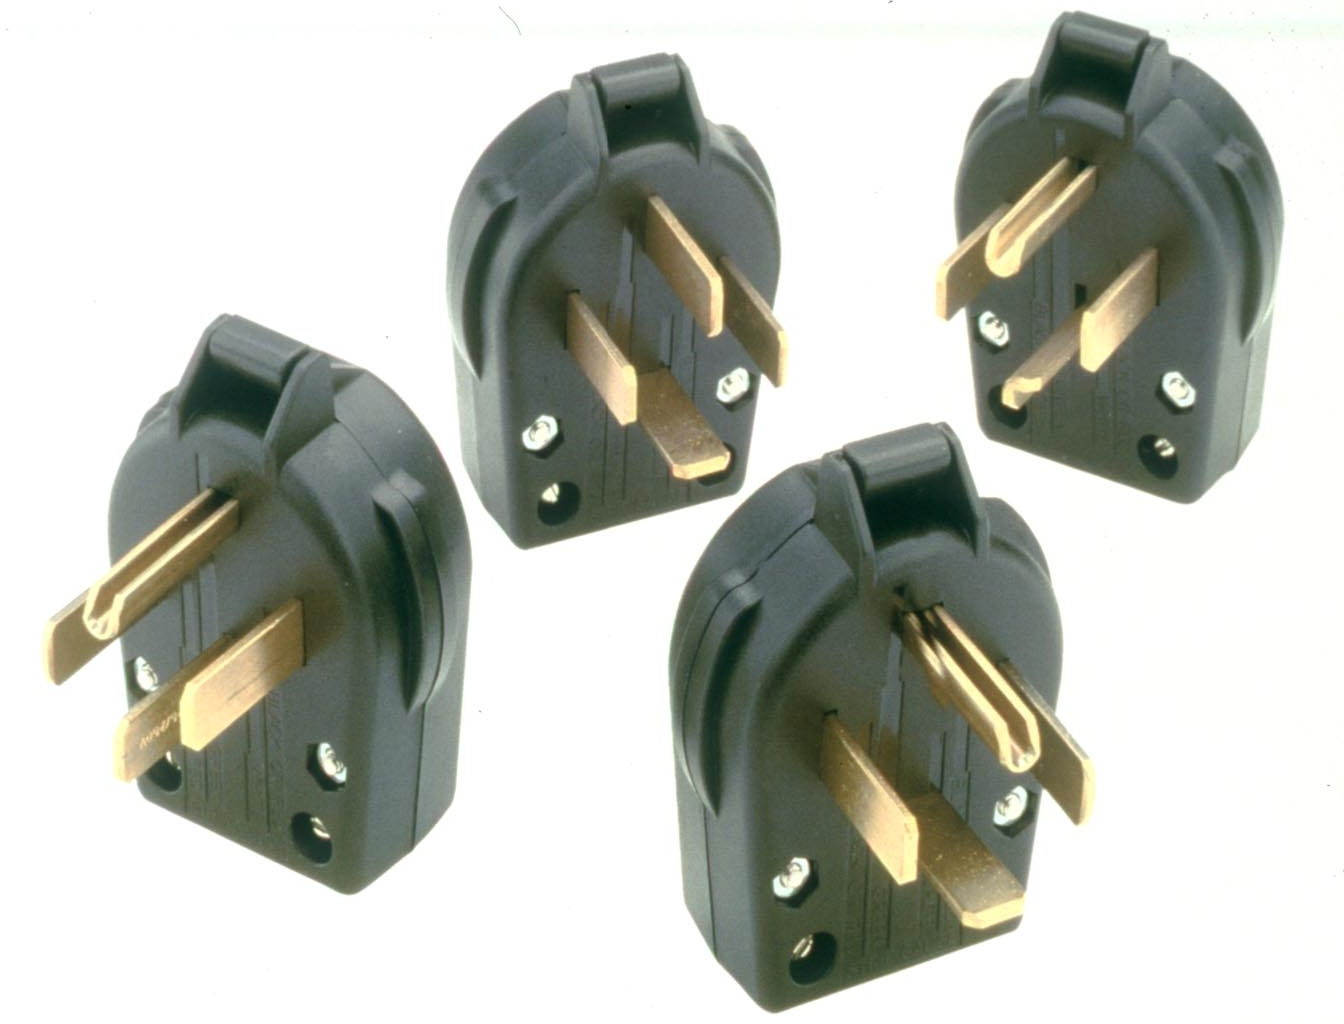 hight resolution of dryer electrical plugs pictures